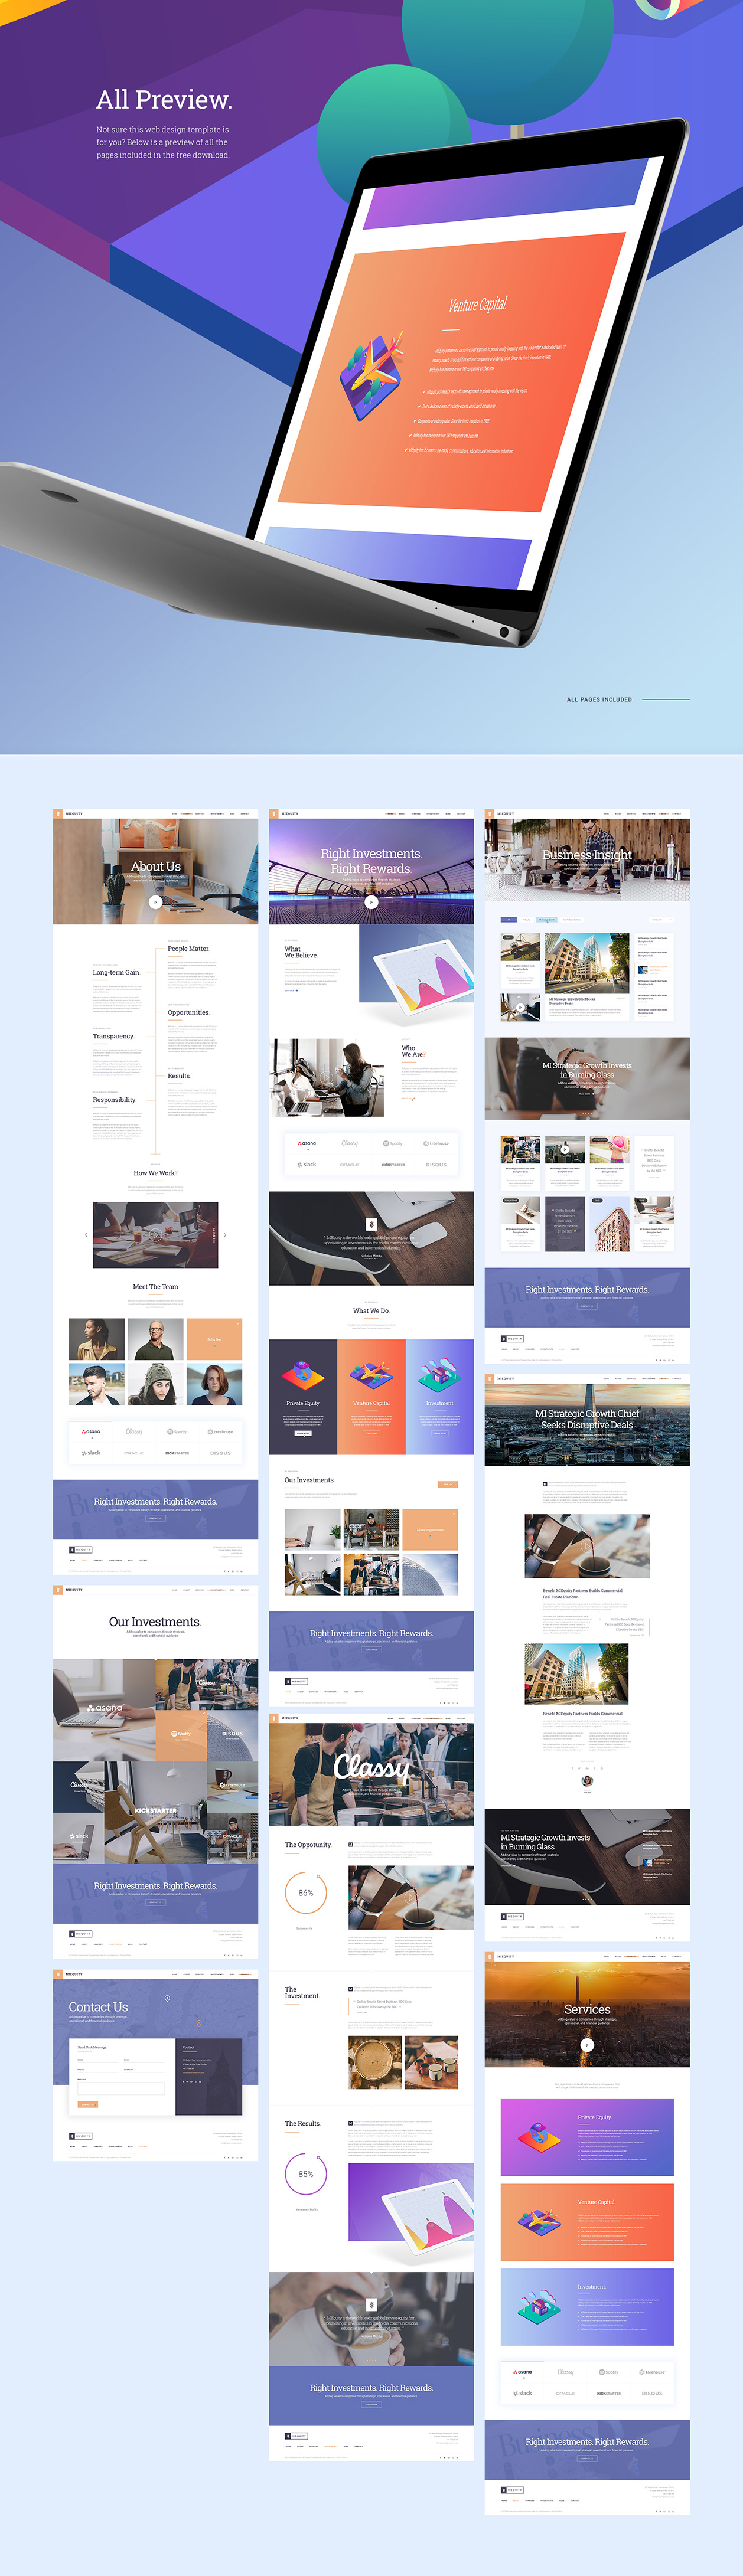 MIEQUITY Web Template Free PSD - All Preview